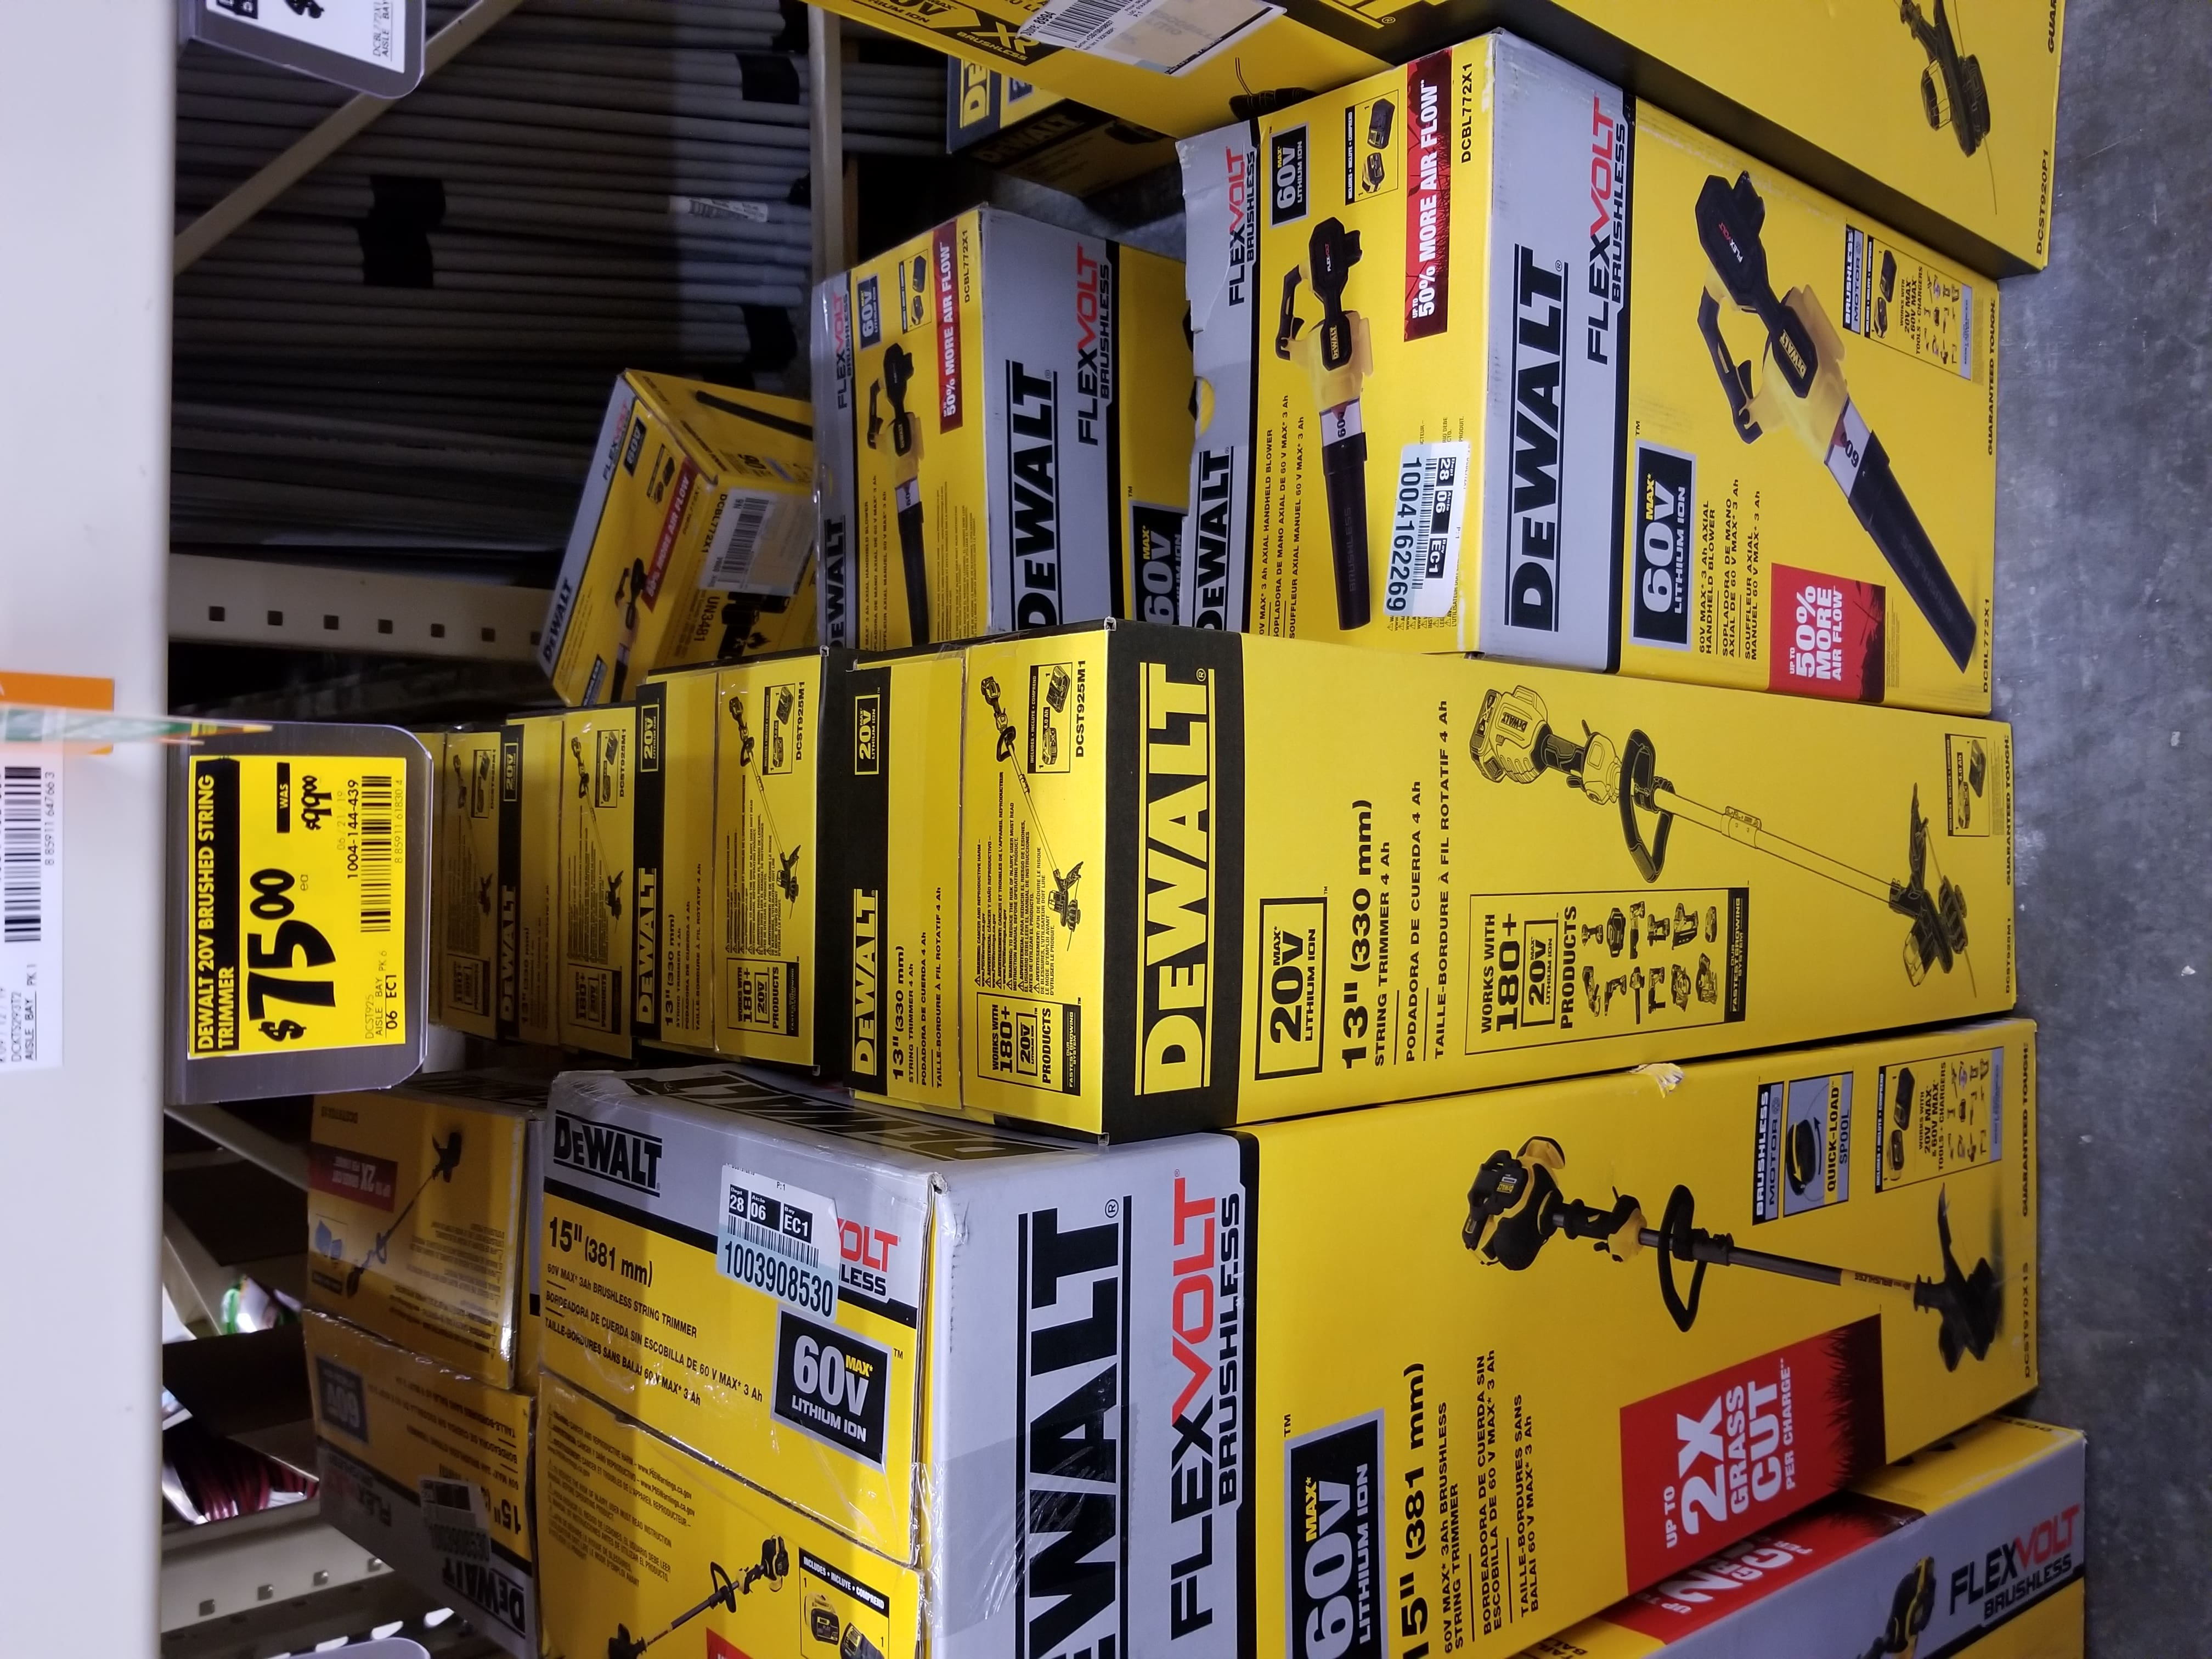 DeWalt 13 in. 20-Volt Max Lithium-Ion Cordless (NOT Brushless) String Trimmer 4Ah + Charger $75 YMMV B&M